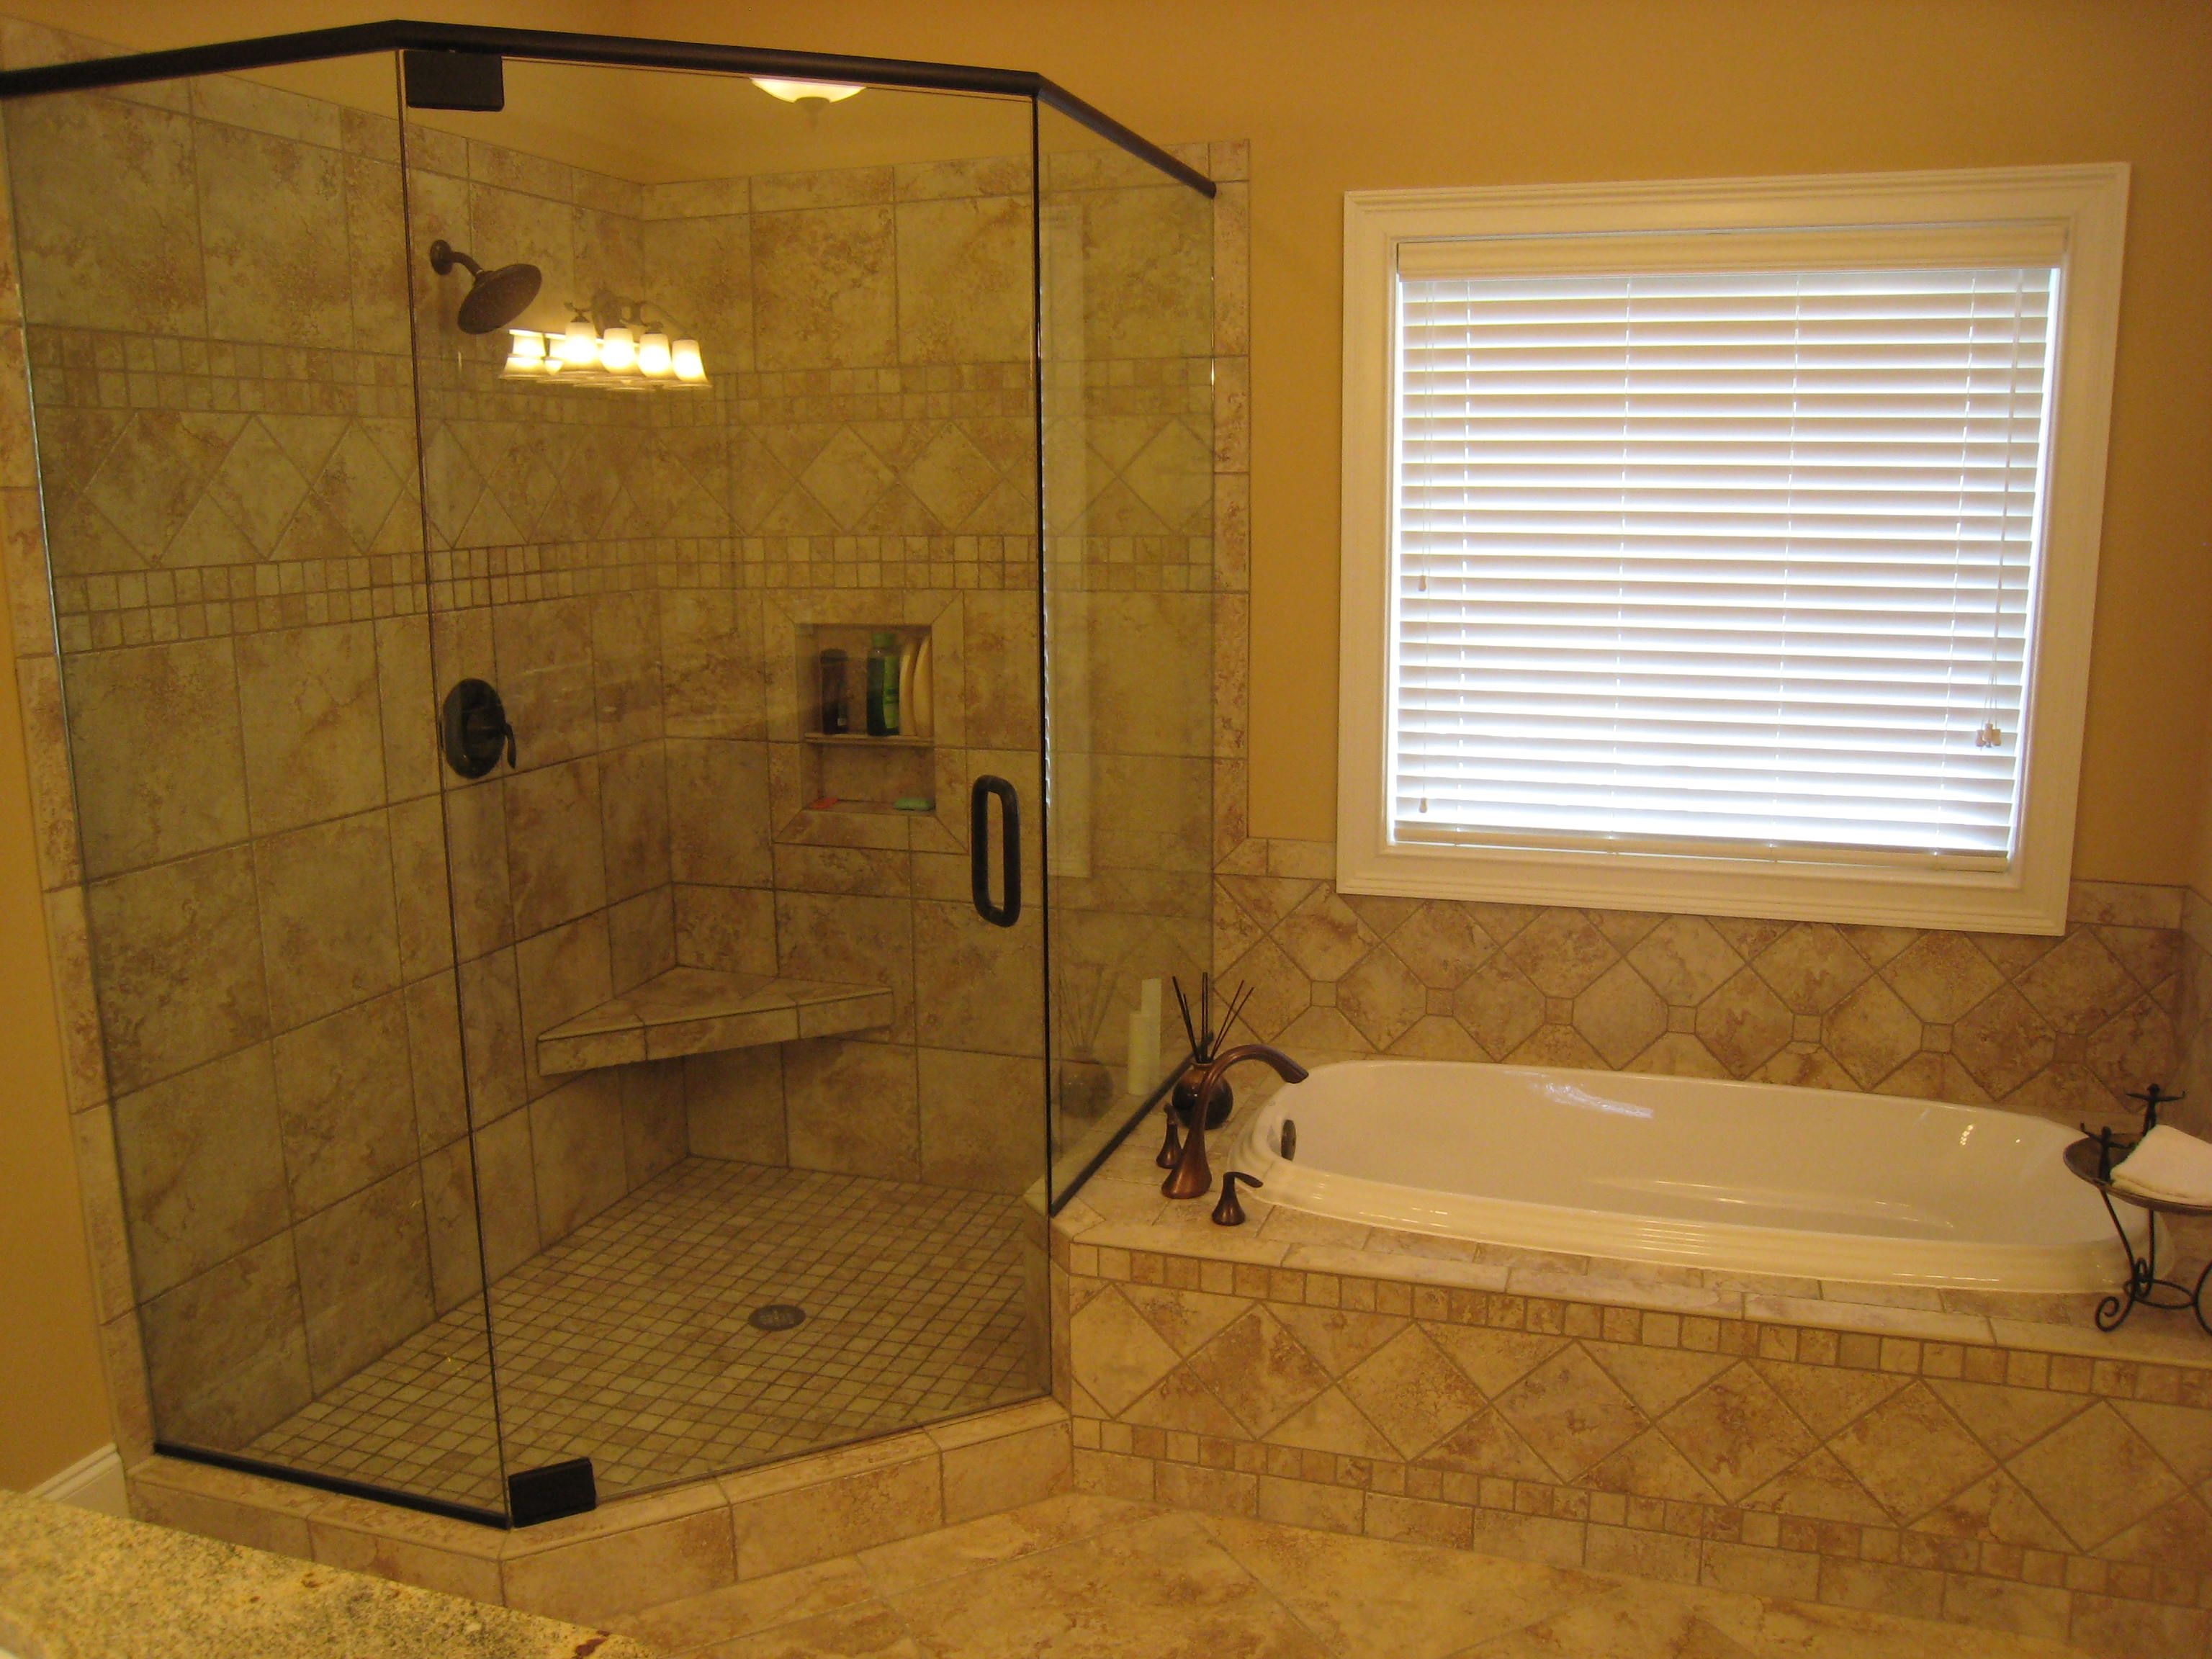 Gallery For Photographers master bath remodel Master bathroom remodel bathroom renovations in Atlanta Bathroom